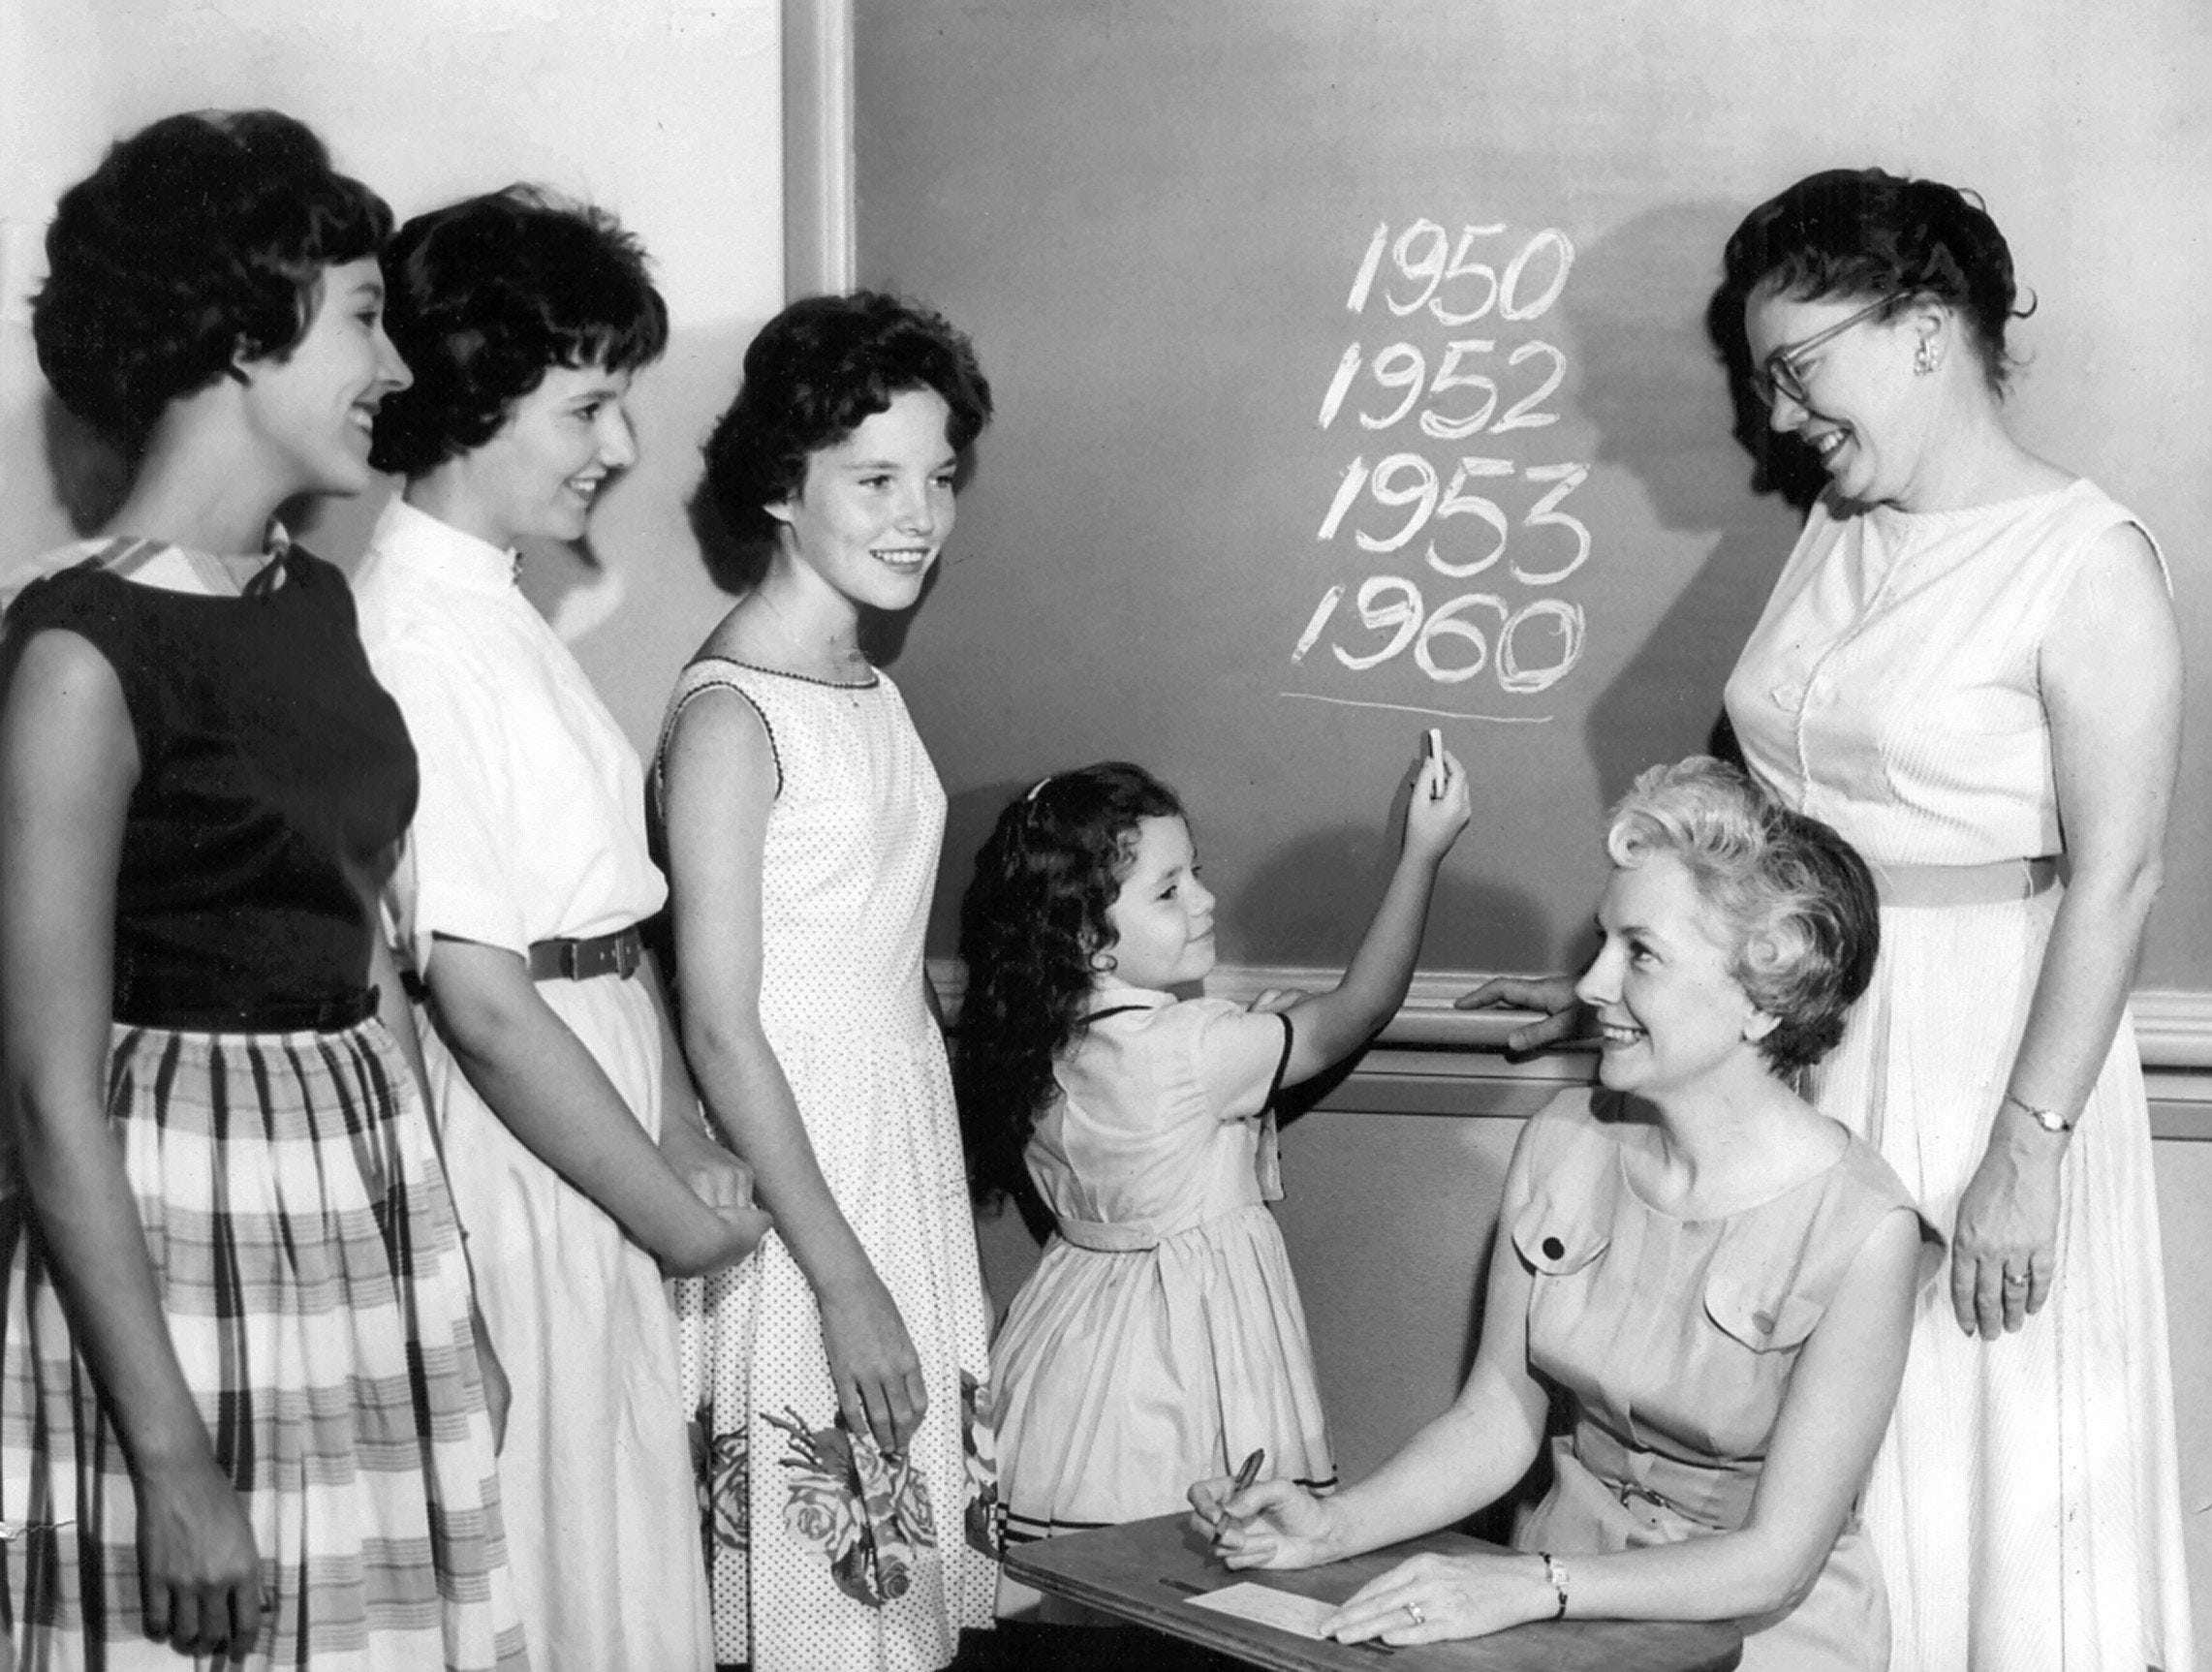 Mrs. Dave M. Williams, seated, of 175 Picardy Place hoped on 29 Aug 1960 that Mrs. Ann Daws, first-grade teacher at East, would draw four of a kind when pupil assignments are dealt out as she completed registering 6-year-old Debbie Williams. Mrs. Daws taught Debbie?s three sisters, from left, Bonnie, 16, Joanie, 14, and Patsy, 13, when they were first-graders. Oh, and by the way, Debbie was in Mrs. Daws? class, too.  Photo for The Commercial Appeal by